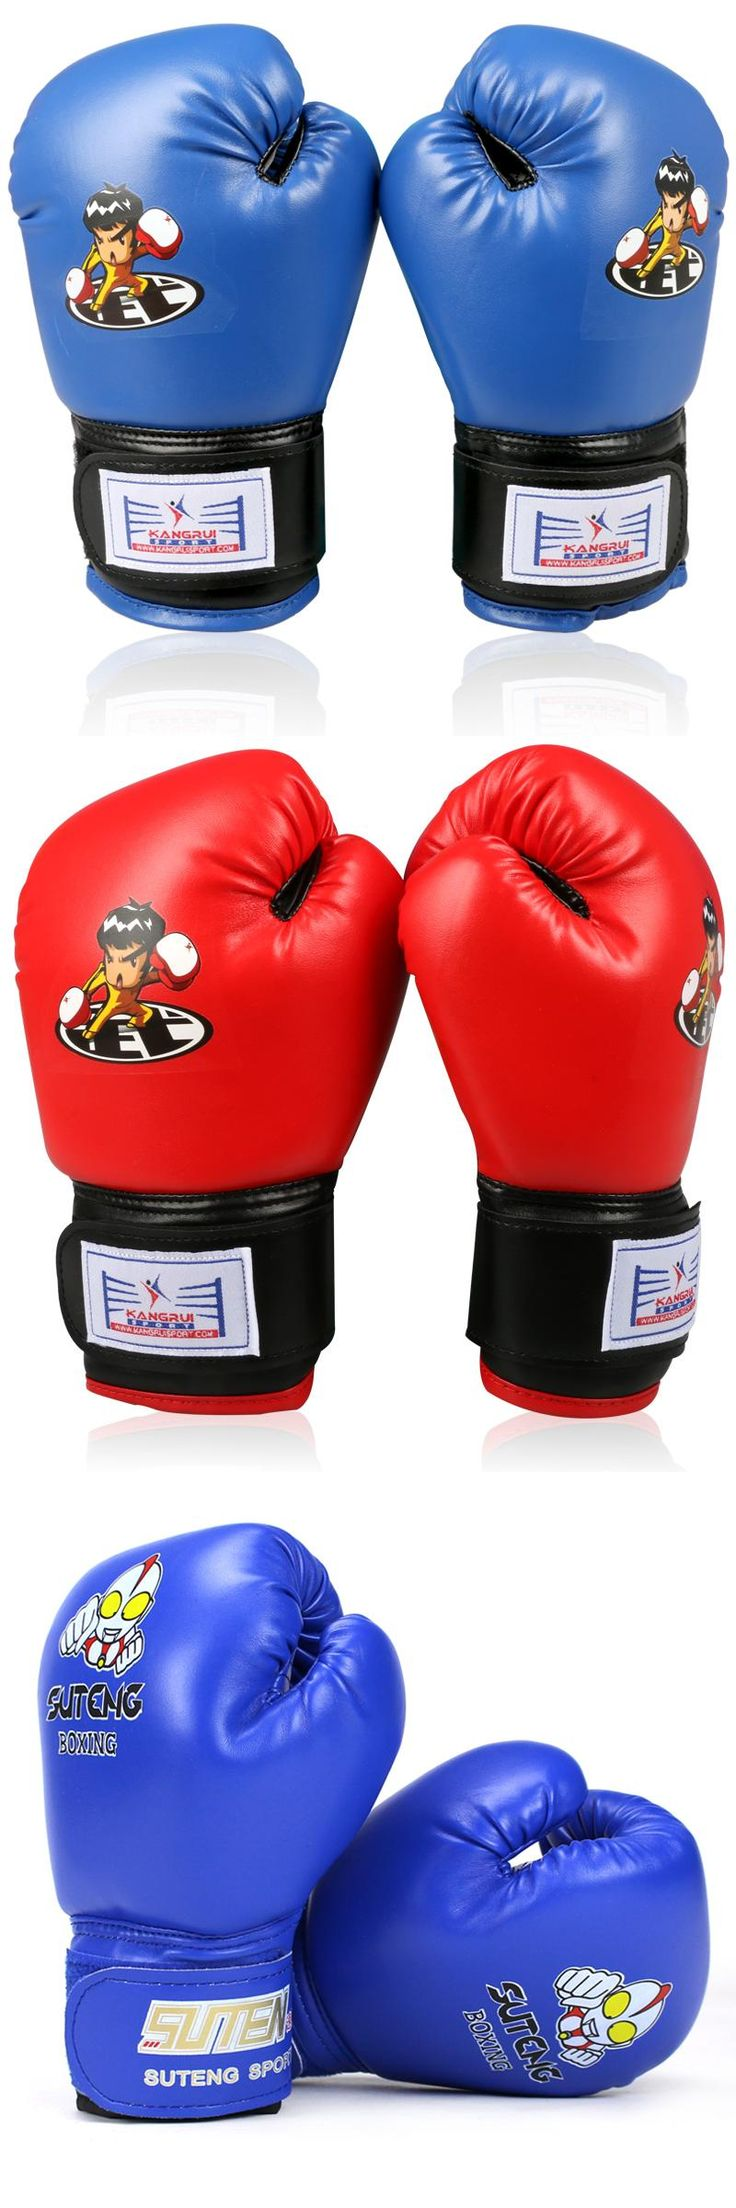 [Visit to Buy] cheap good quality Breathable PU leather 8 oz child babies kids kick fighting boxing gloves muay thai carton funny boxe gloves #Advertisement